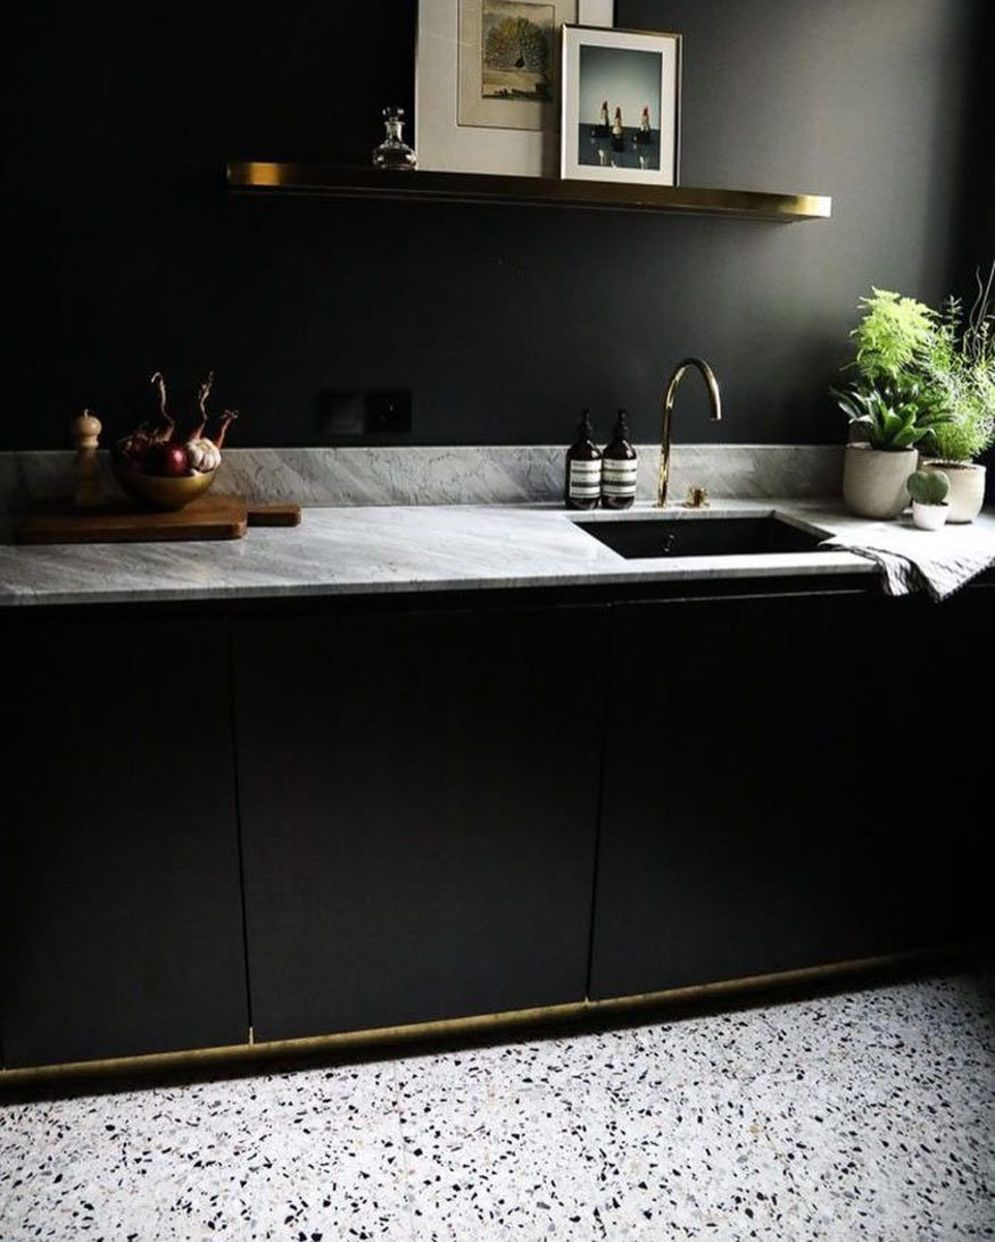 Amazing terrazzo decoration revival giving a cozy look in a warm and friendly interior scheme Image 13